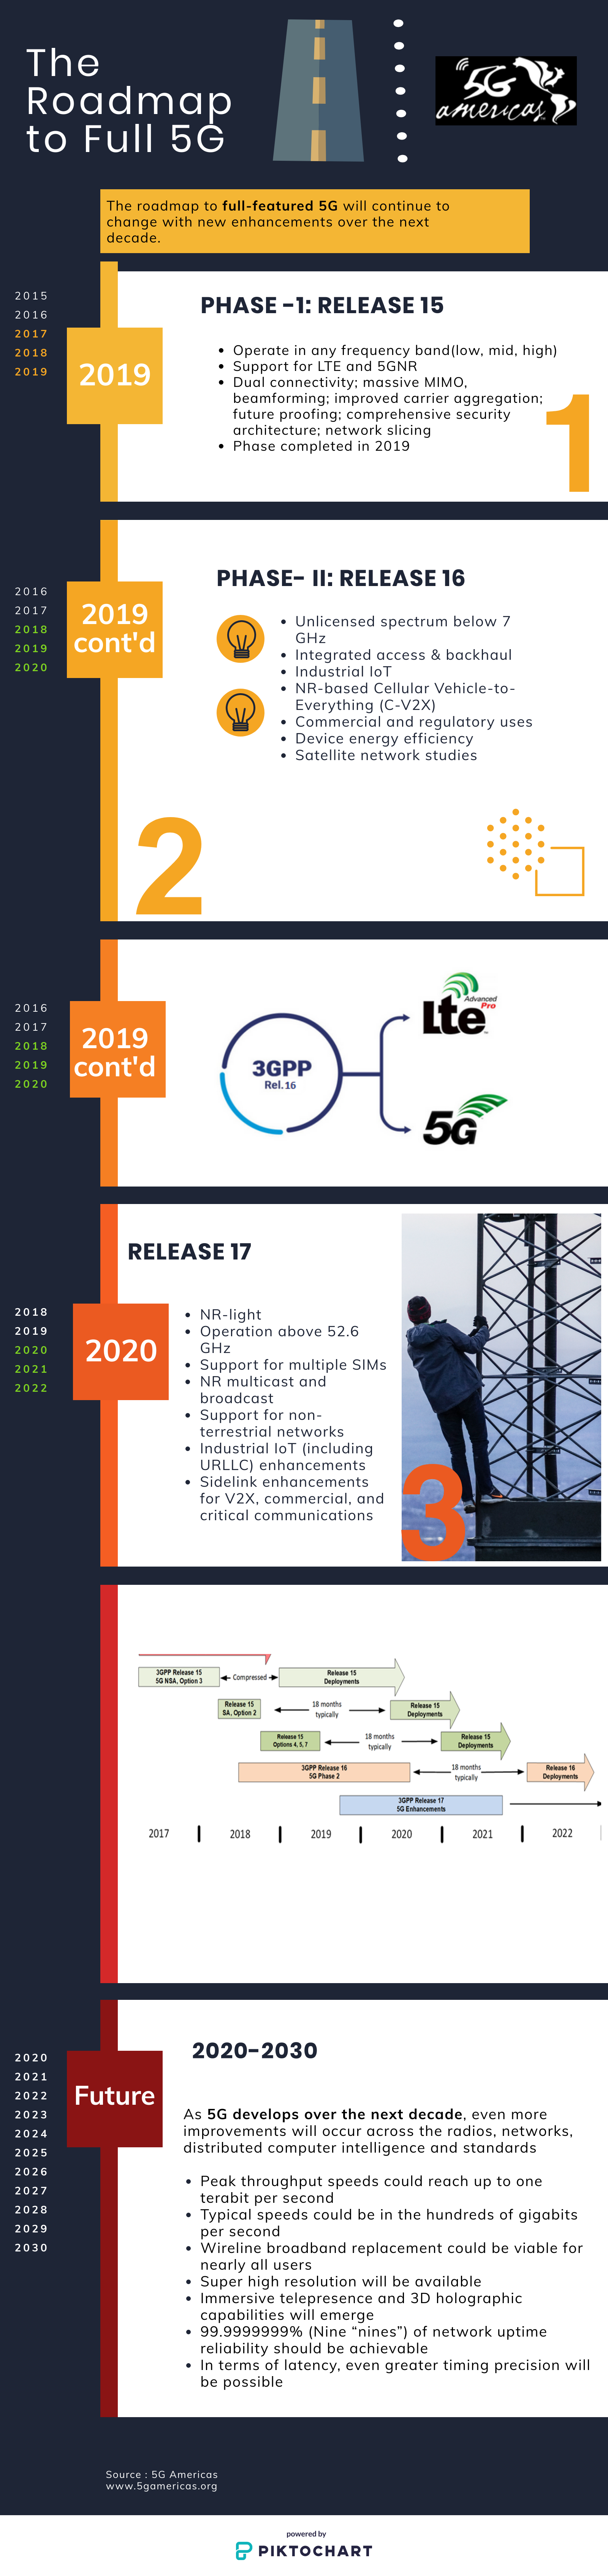 5G Americas Report Explores 5G's Present and Future | News